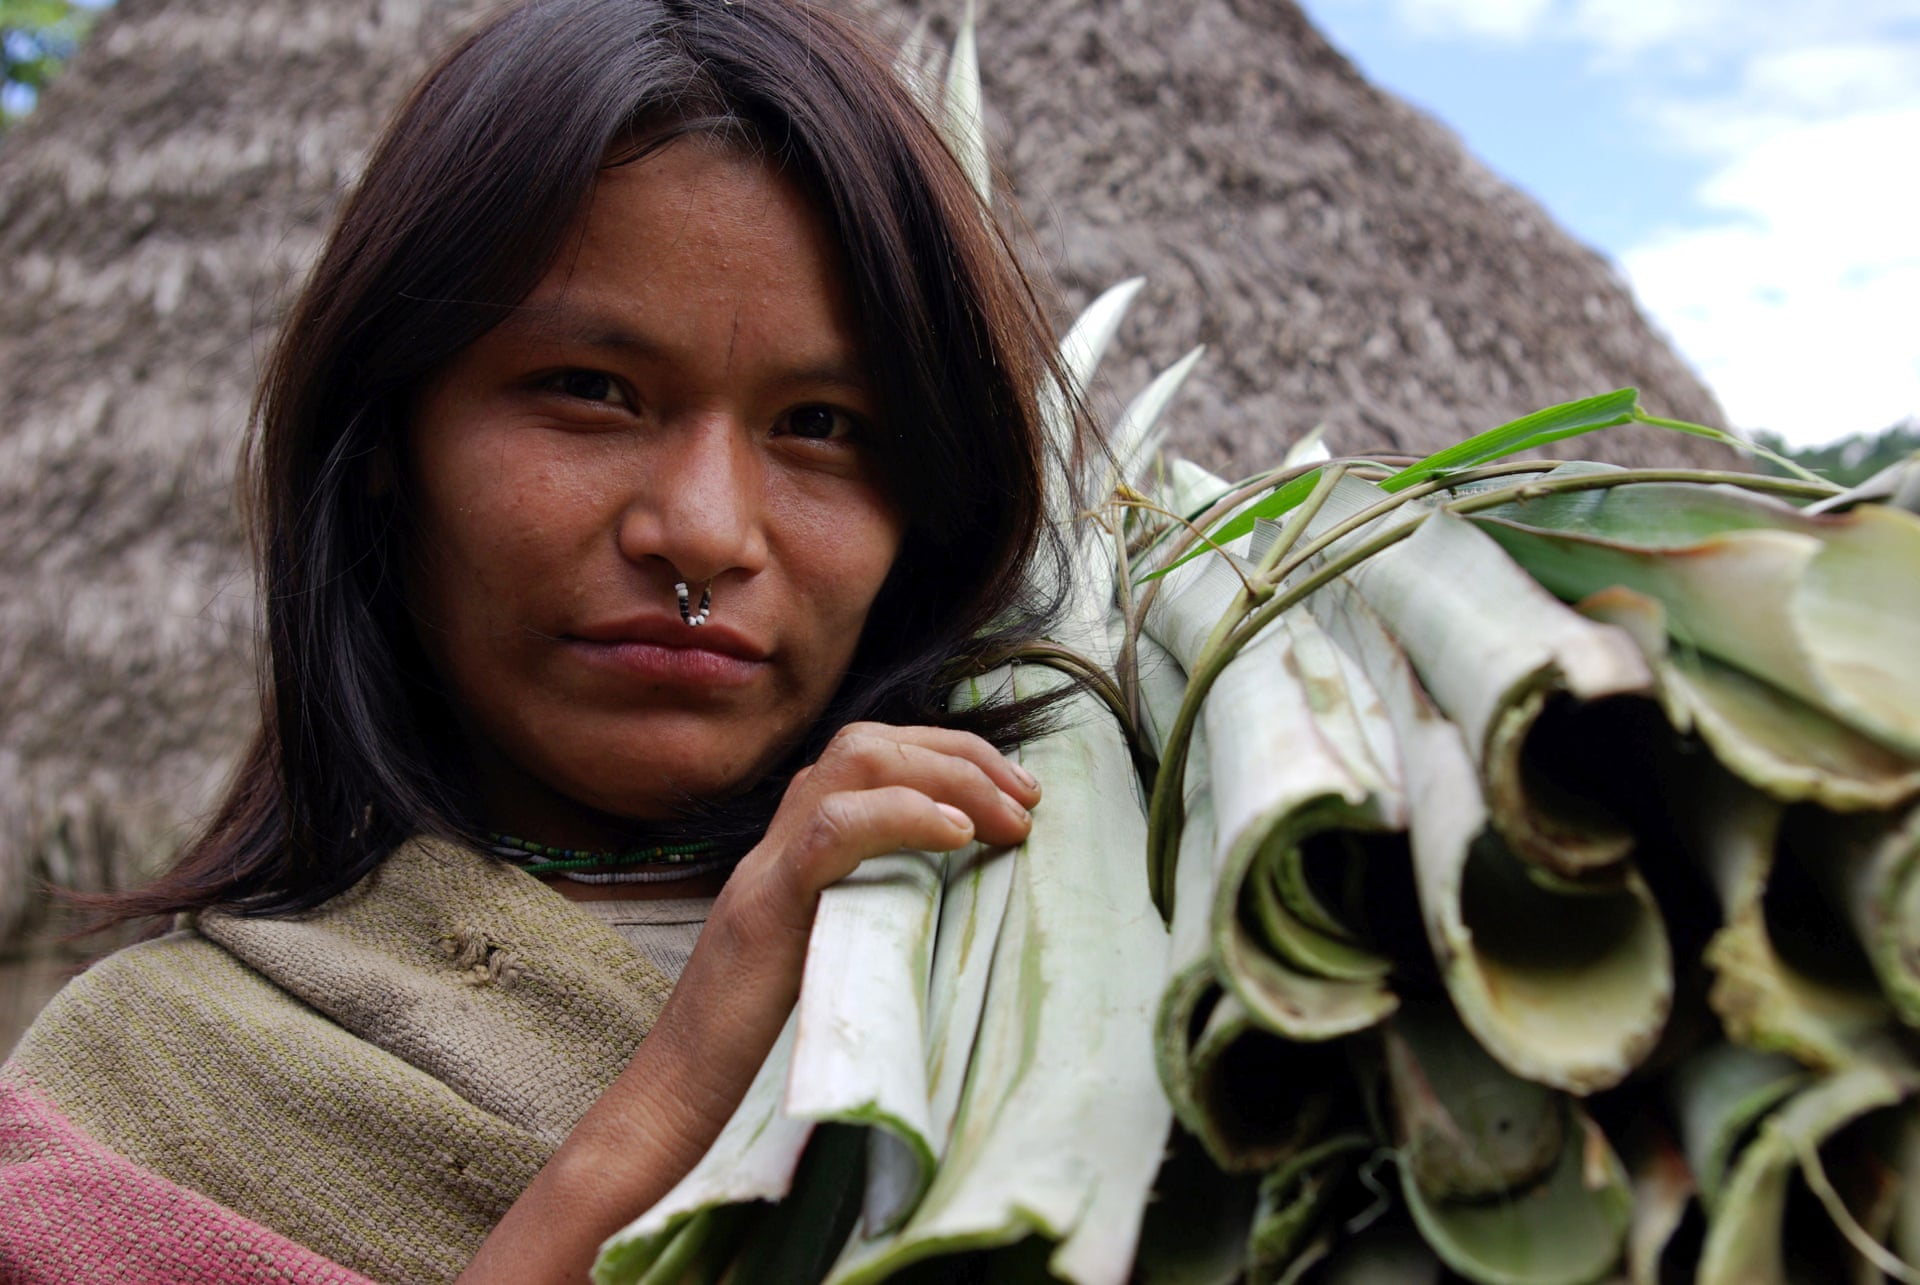 A Matsigenka woman from one of the indigenous communities in the Manu National Park in Peru. None of the communities have title to their land. Photograph: Glenn Shepard